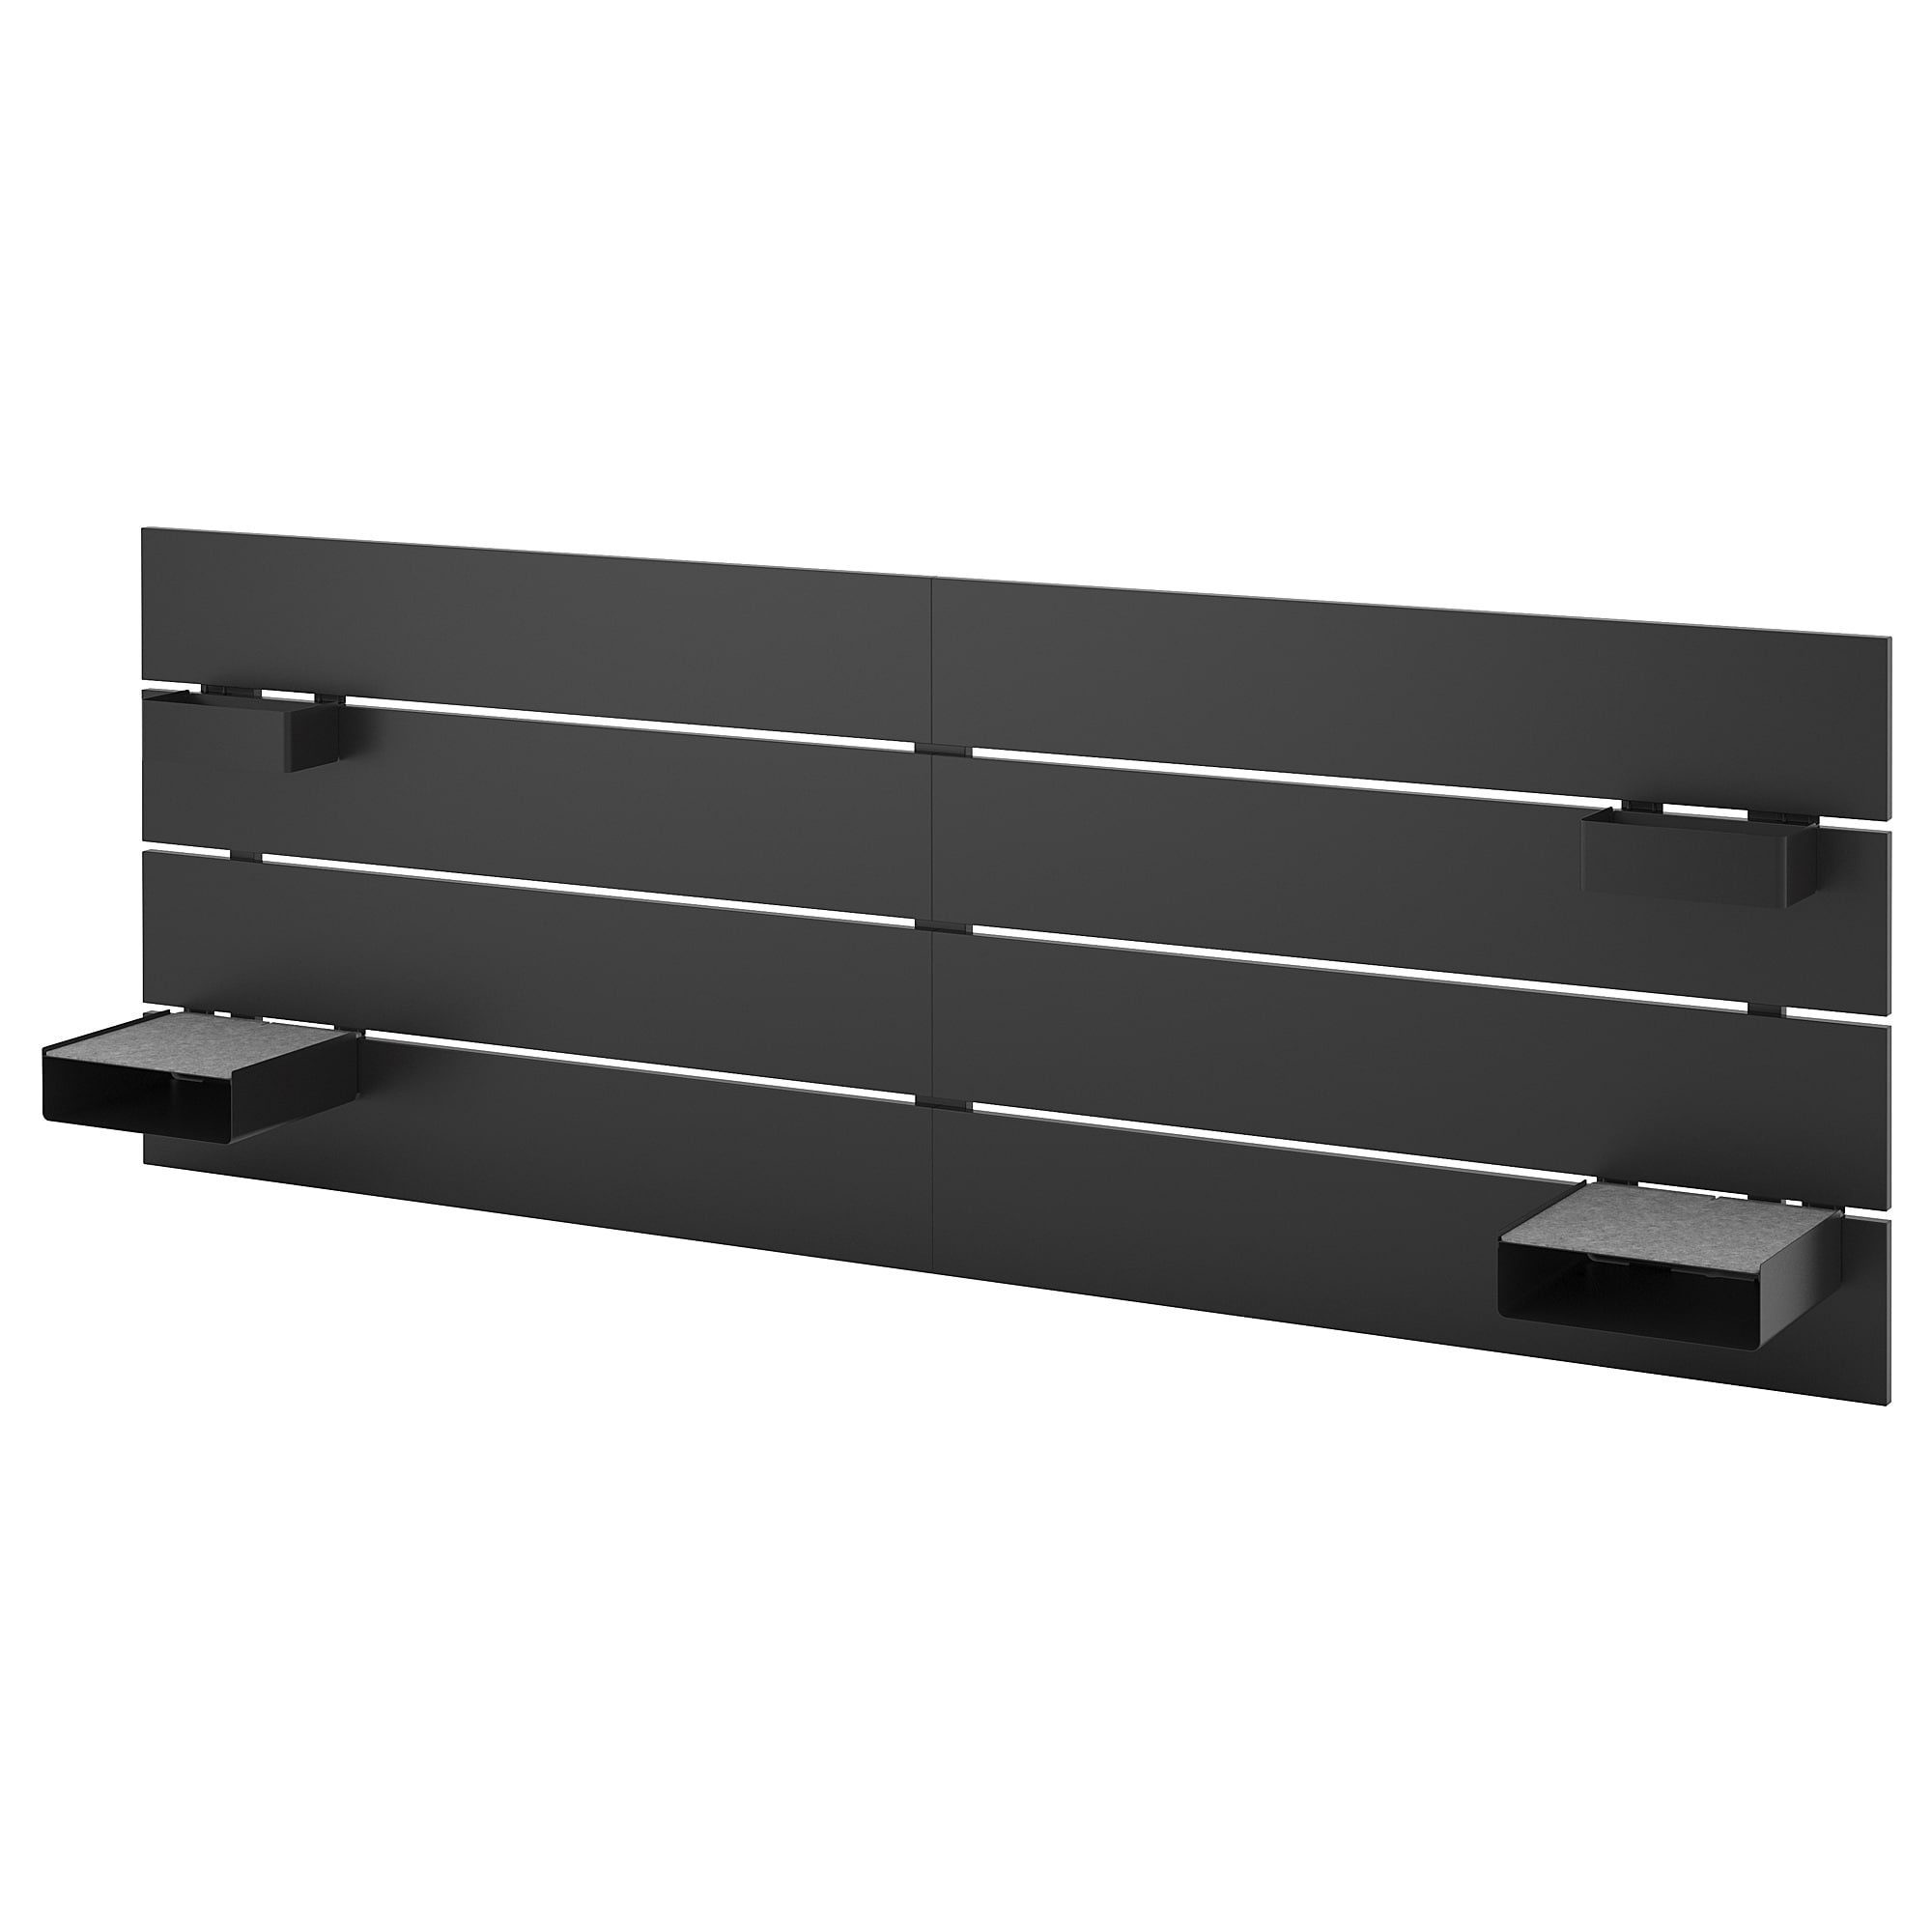 Ikea Möbel Nordli Ikea Nordli Anthracite Headboard In 2019 Dear Future Husband